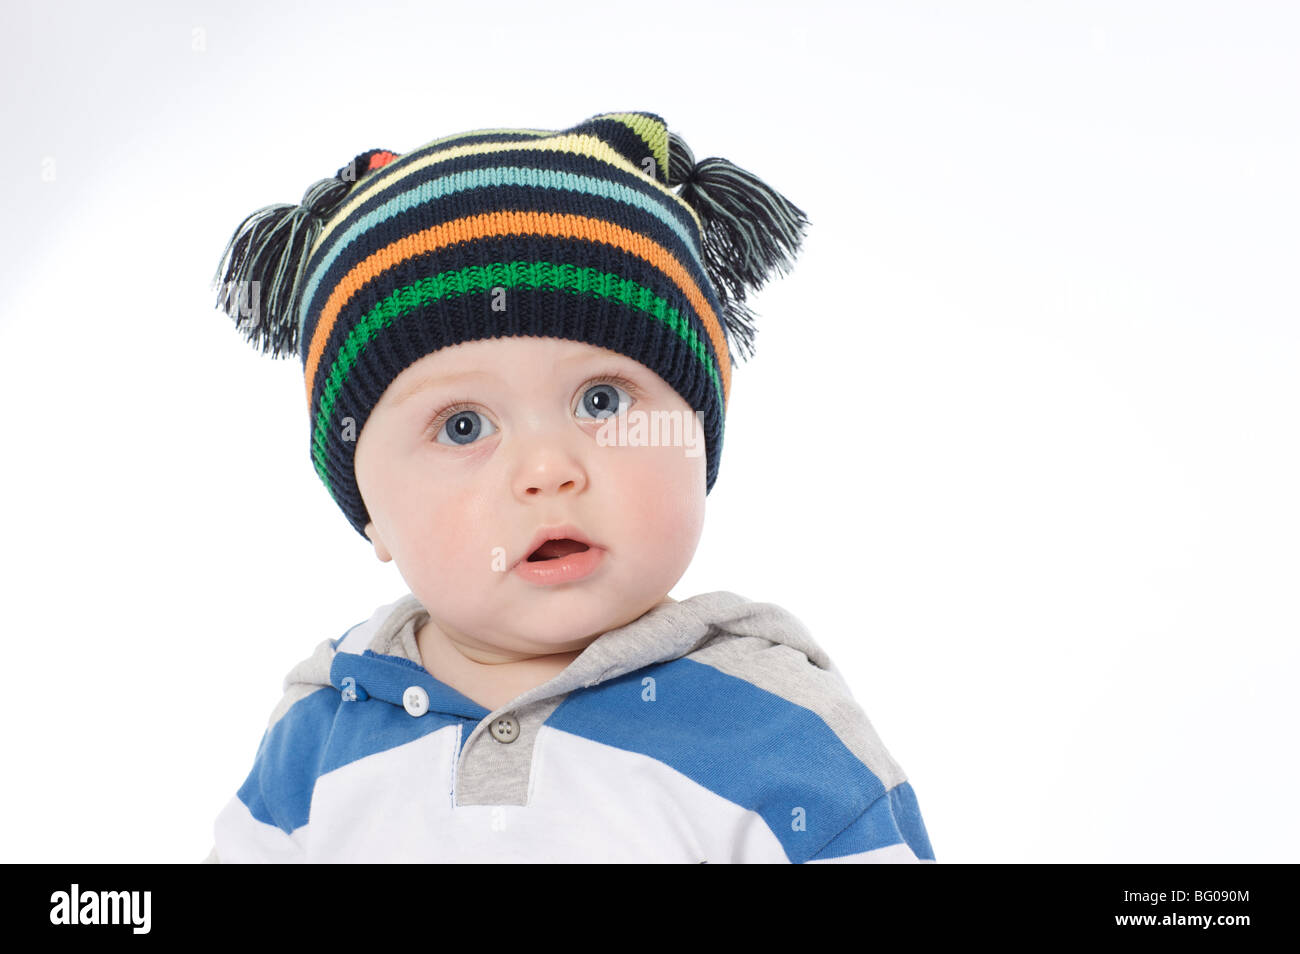 27646961ed0c9 beautiful cute caucasion 6 month old baby boy with ski hat on